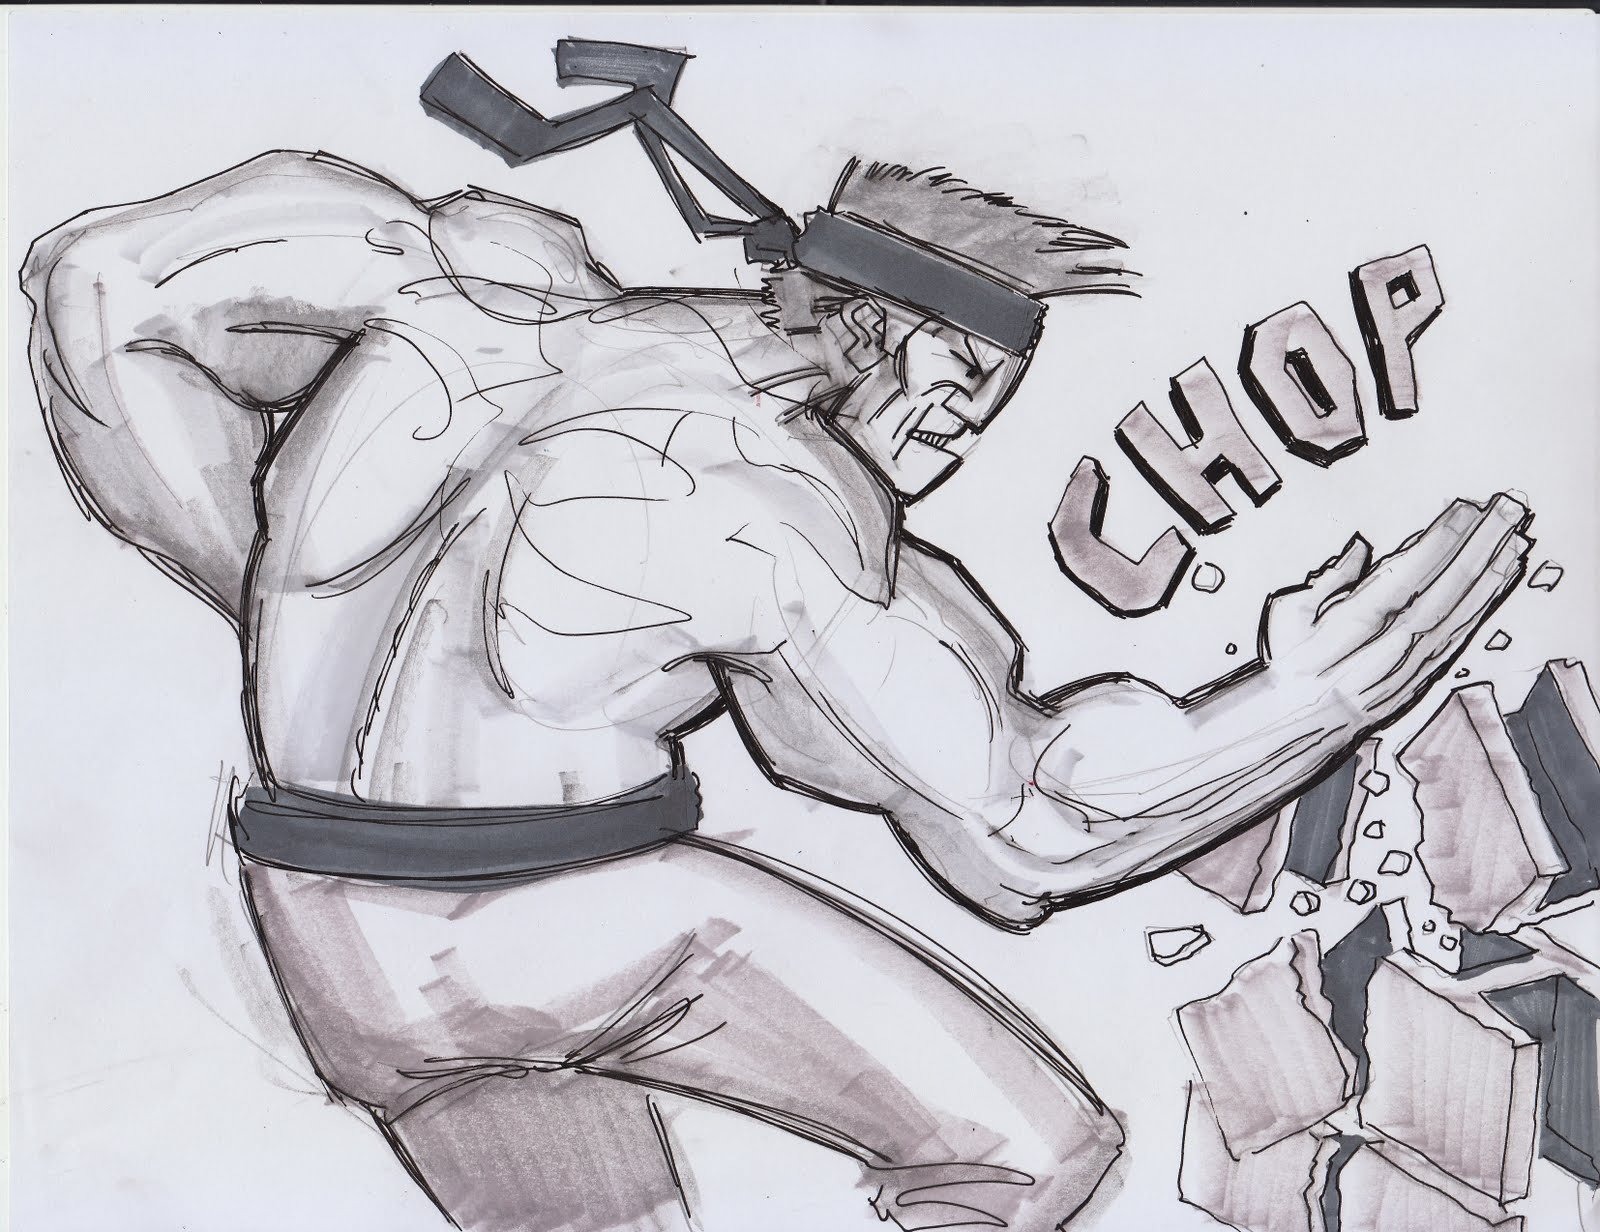 Wilsonic Illustration: Karate Chop